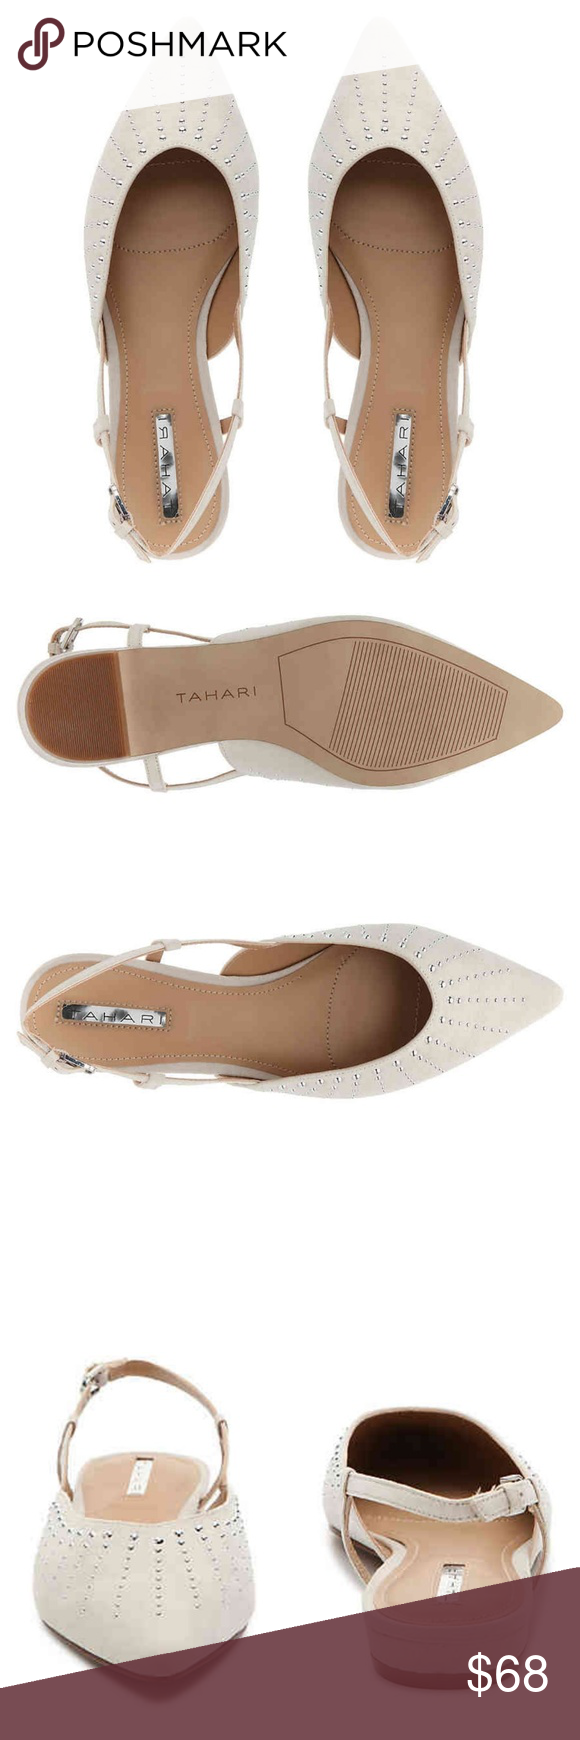 Tahari Pat Slingback Pointed Flats Stay on top of your favorite